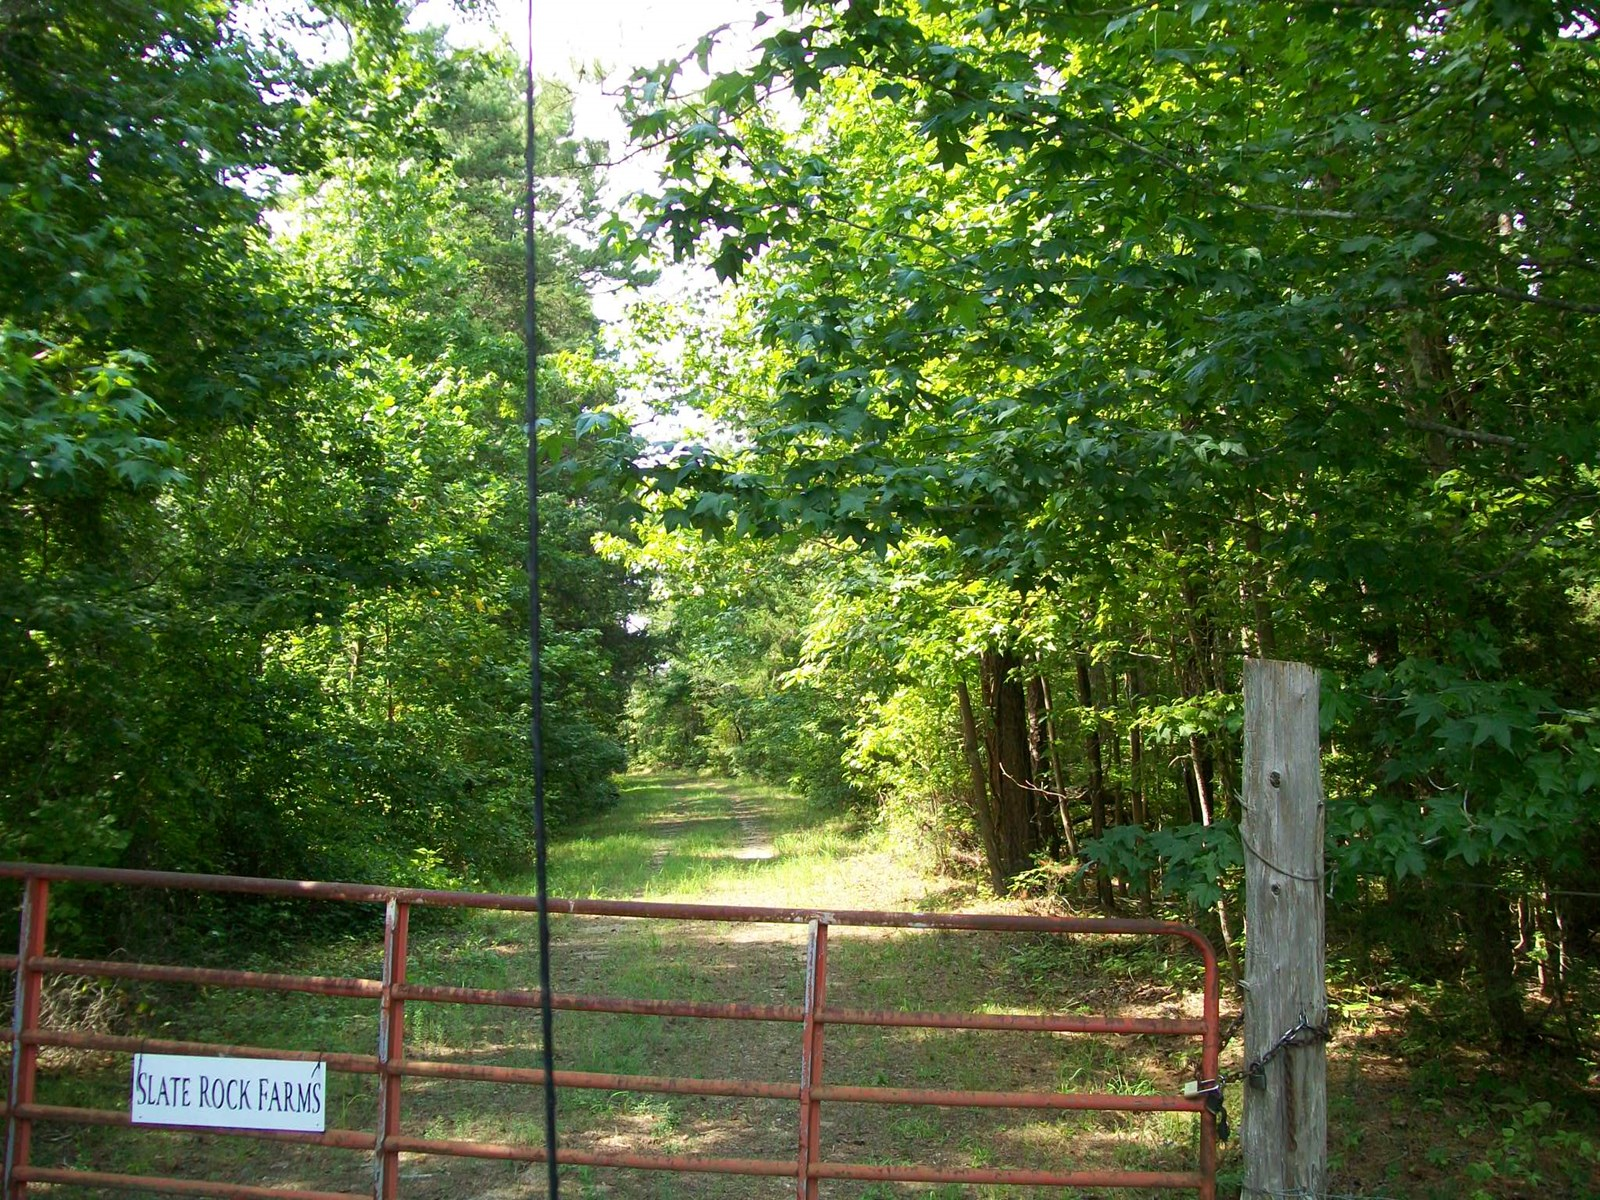 Vacant Land for Sale in West TN